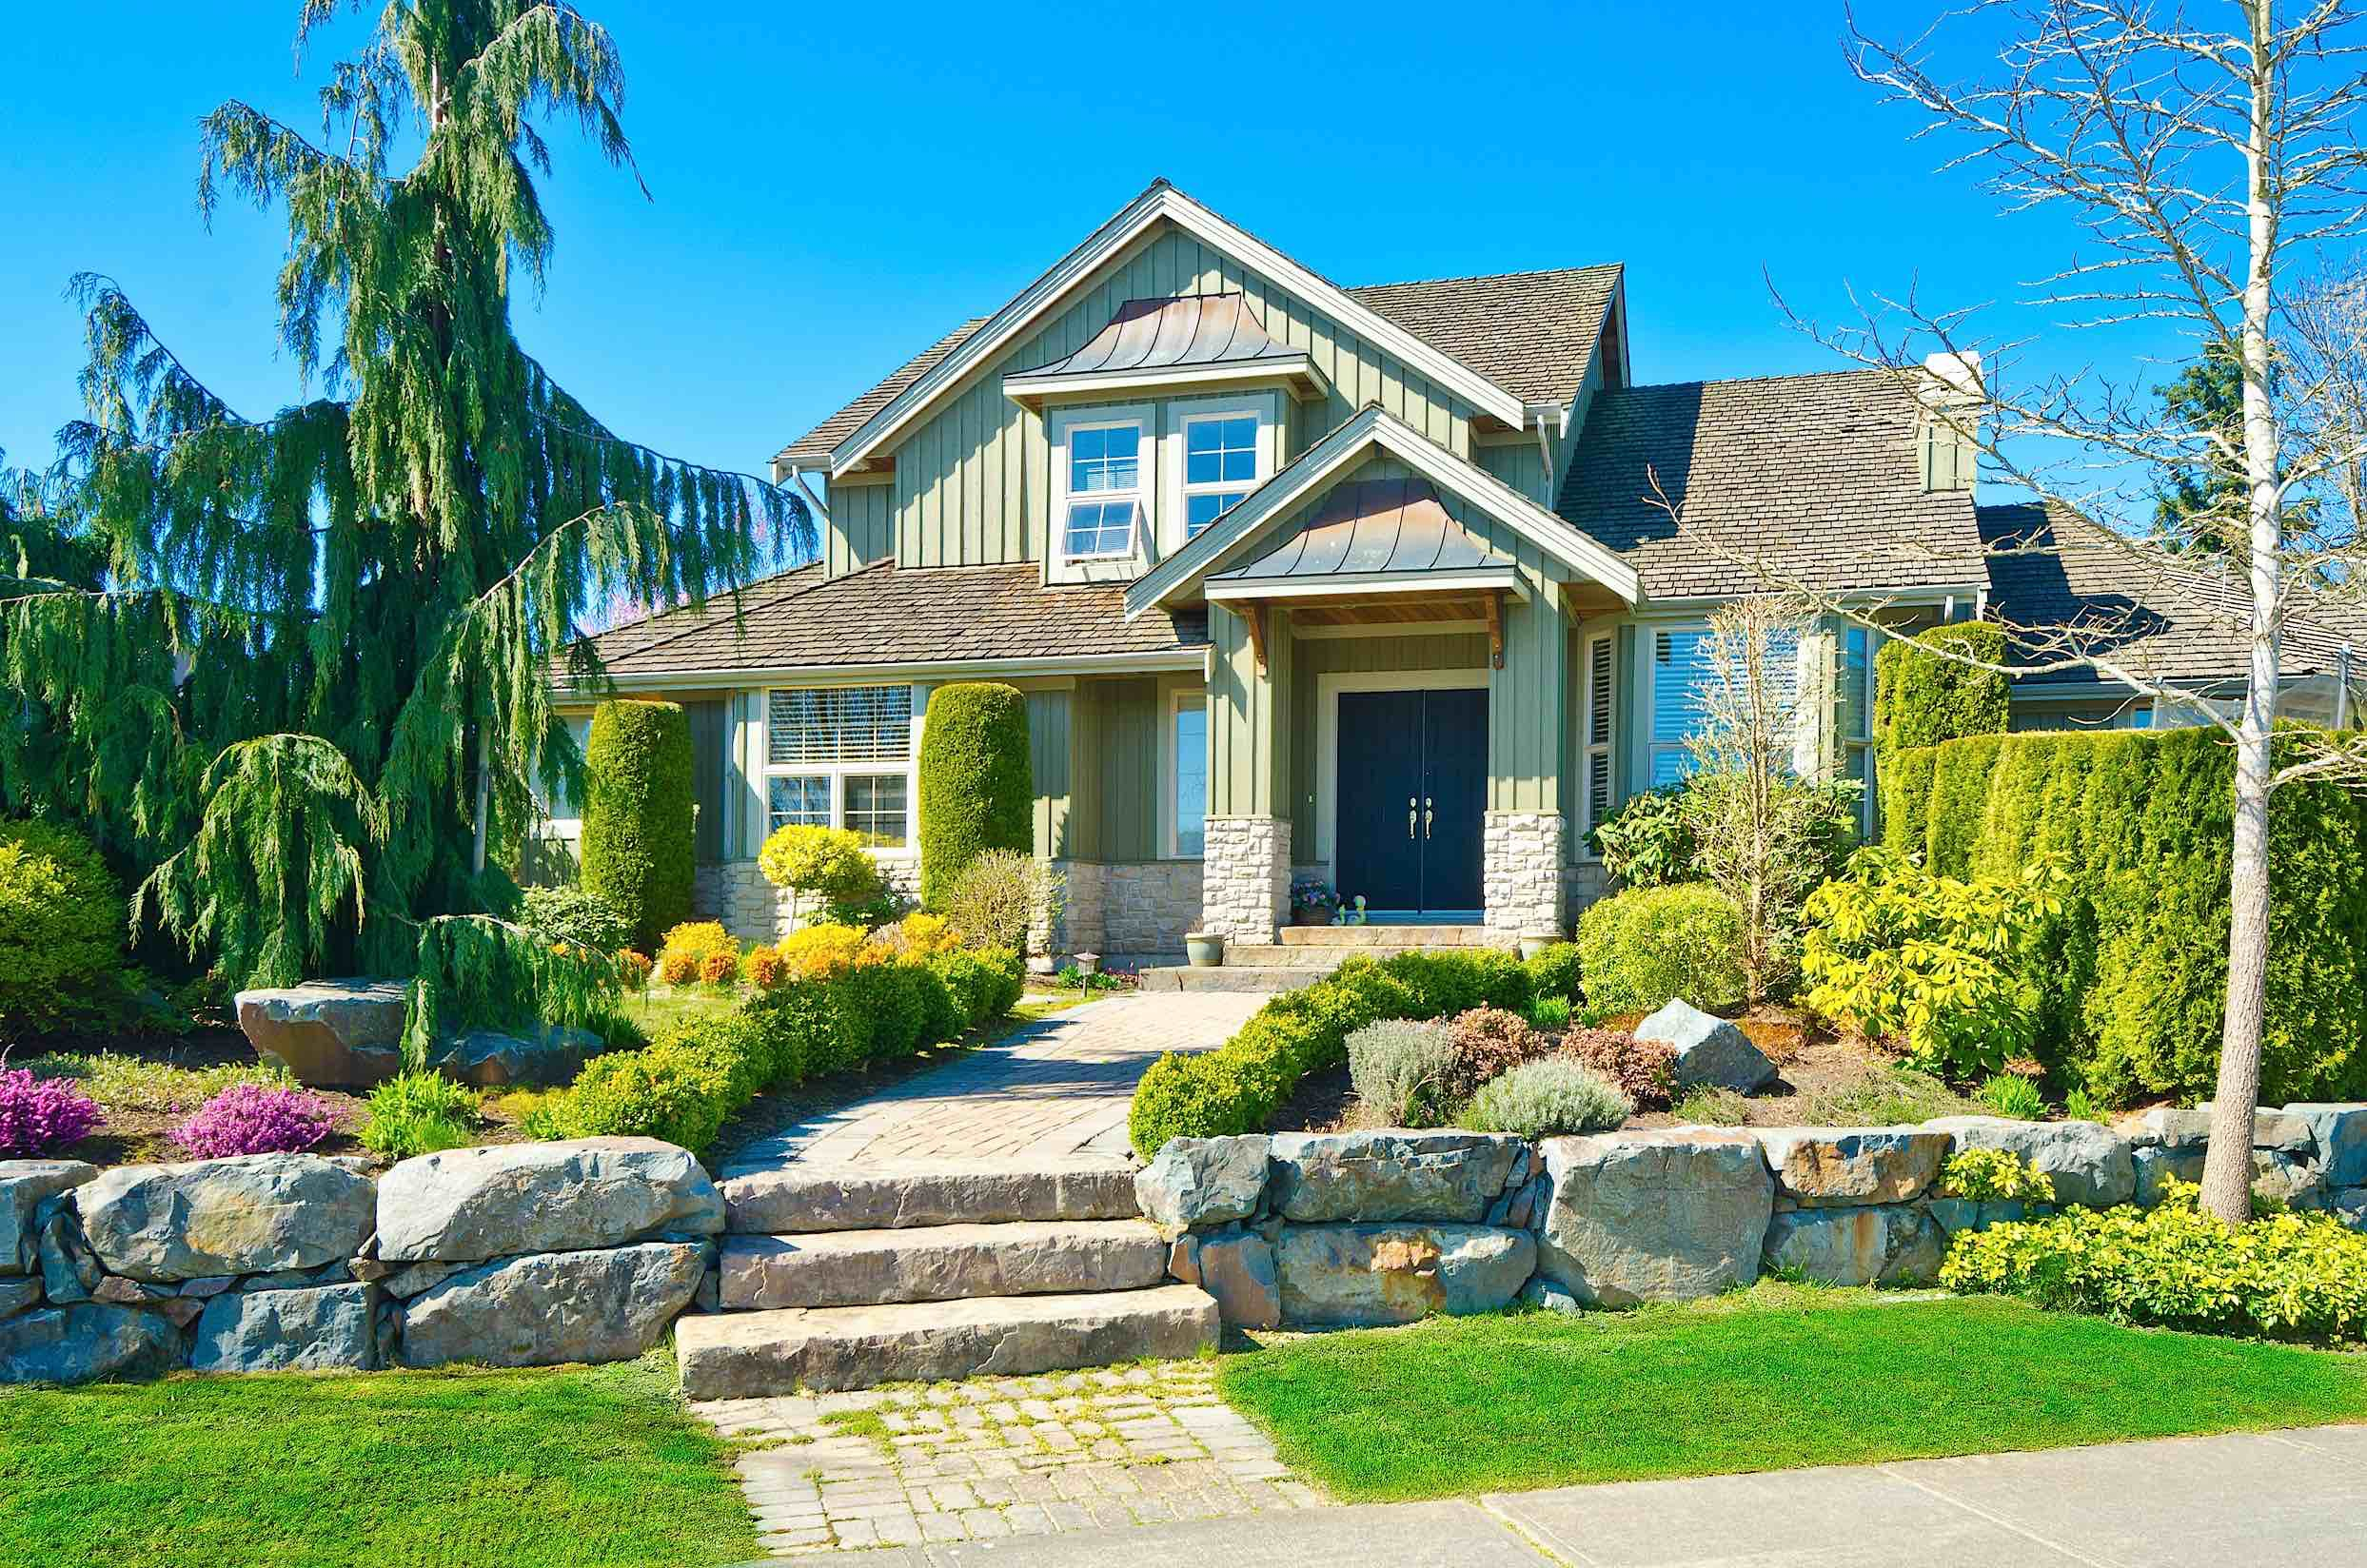 Easy Tricks To Improve Your Home's Curb Appeal on Front Yard Patio id=69286